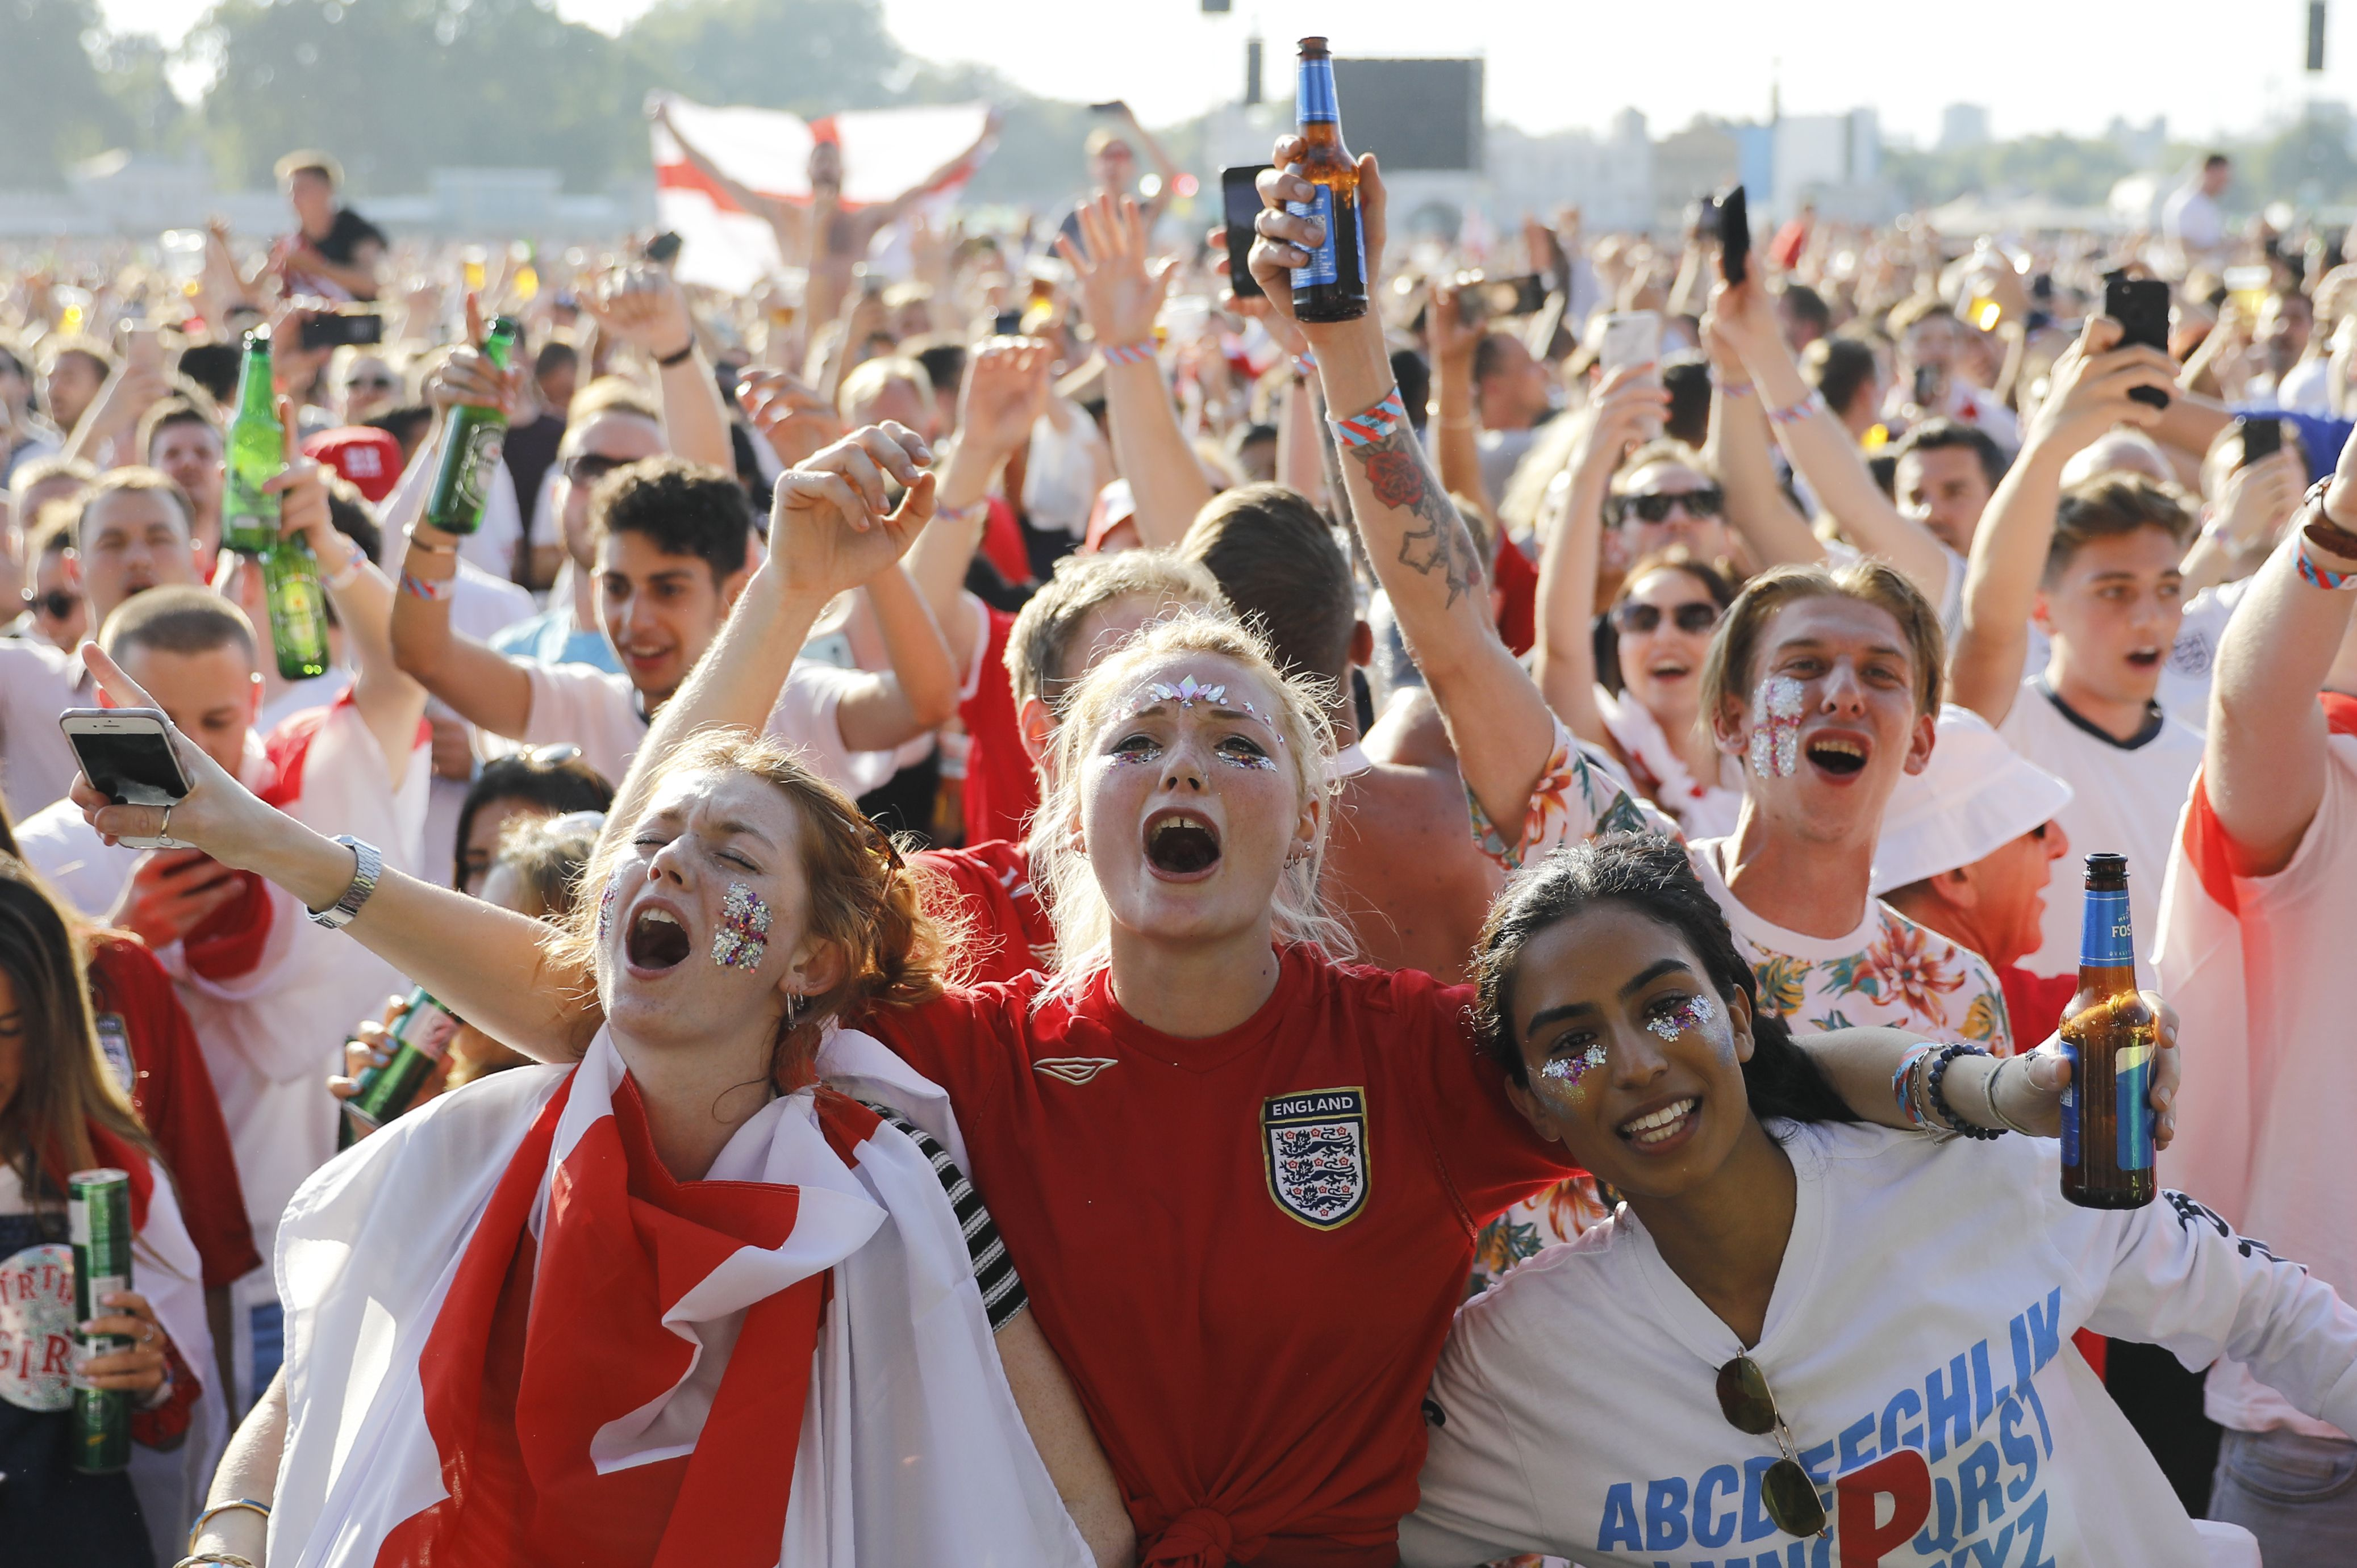 England supporters arrive at an outdoor screen in Hyde Park in central London to watch England the 2018 World Cup semi-final between England and Croatia in Moscow on July 11, 2018.